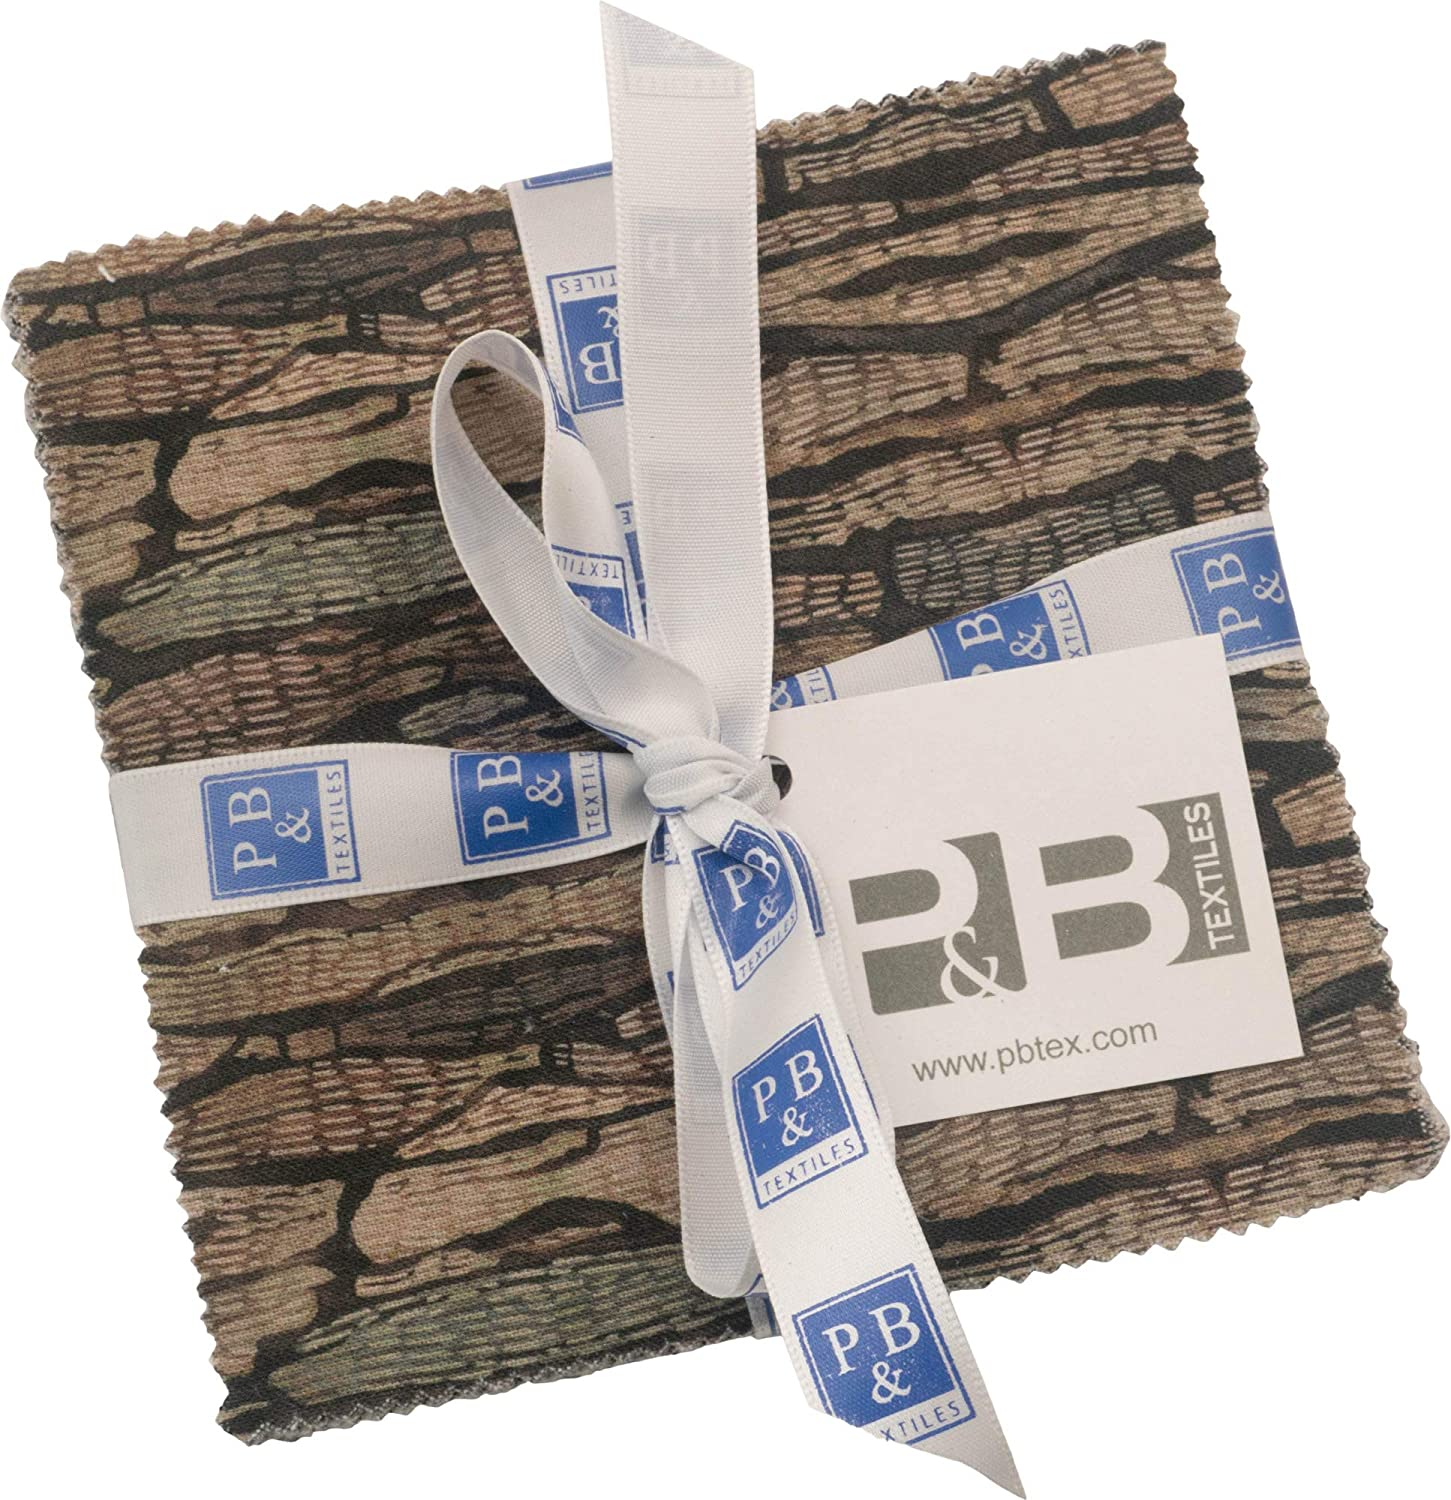 Jetty Home Forest Retreat Charm Pack 42 5-inch Squares P&B Textiles